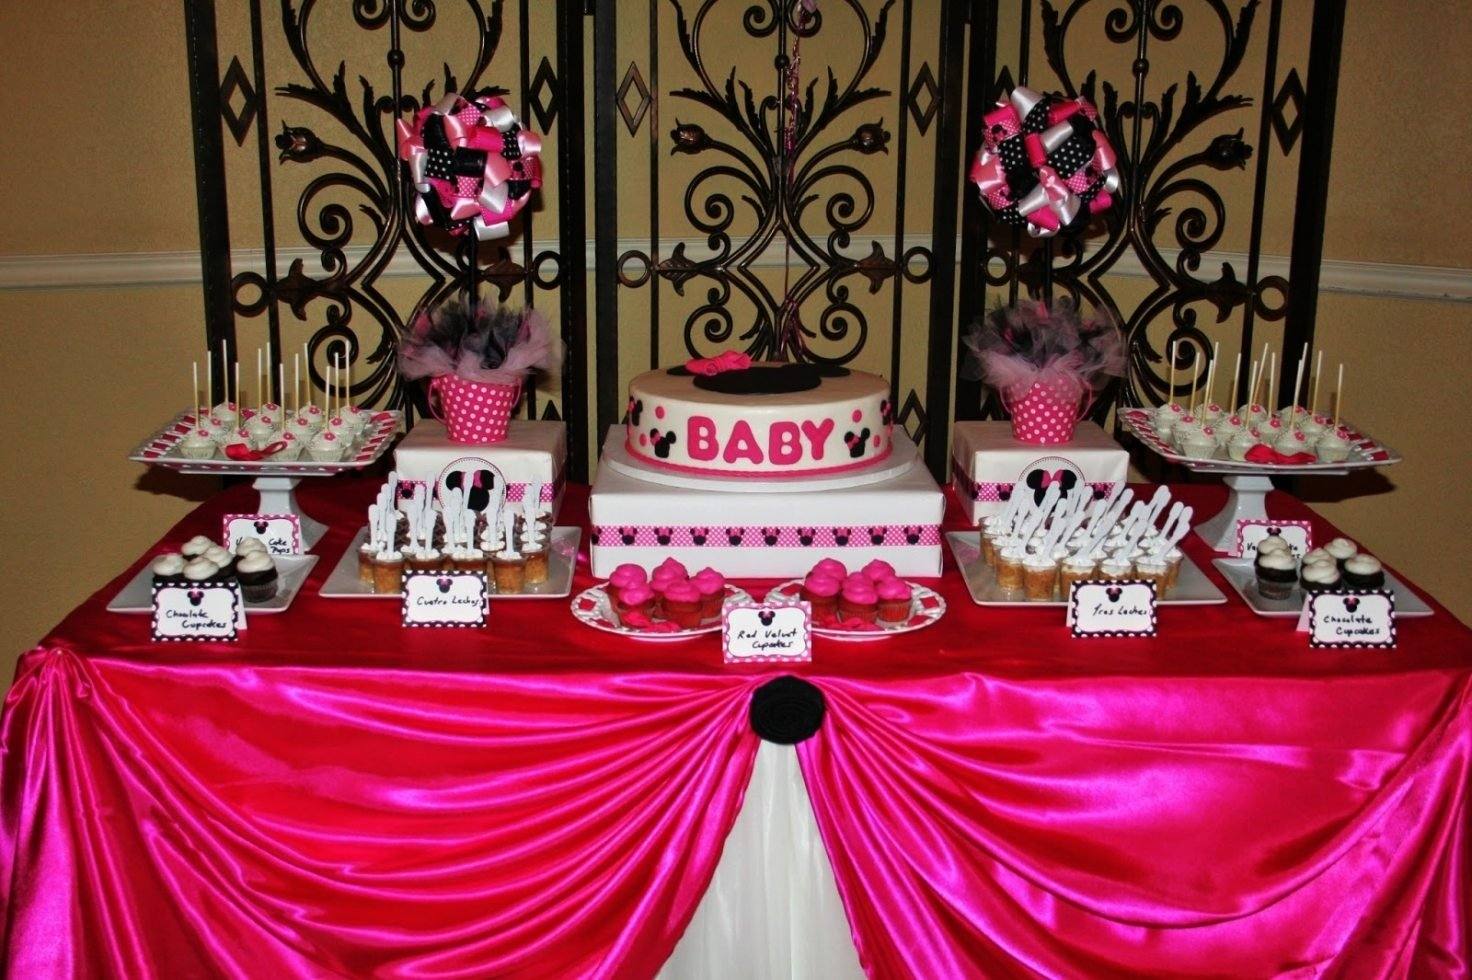 10 Beautiful Baby Minnie Mouse Party Ideas baby minnie mouse party decorations minnie mouse baby shower 2020